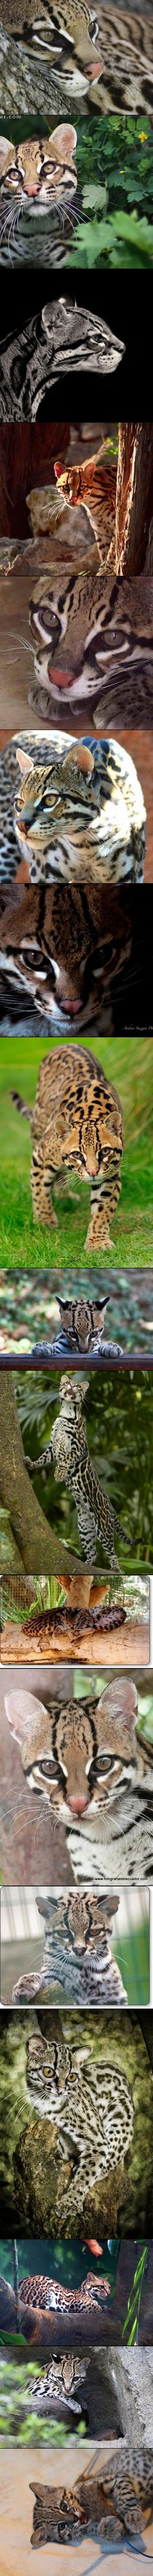 Save the Ocelot before it is to late!